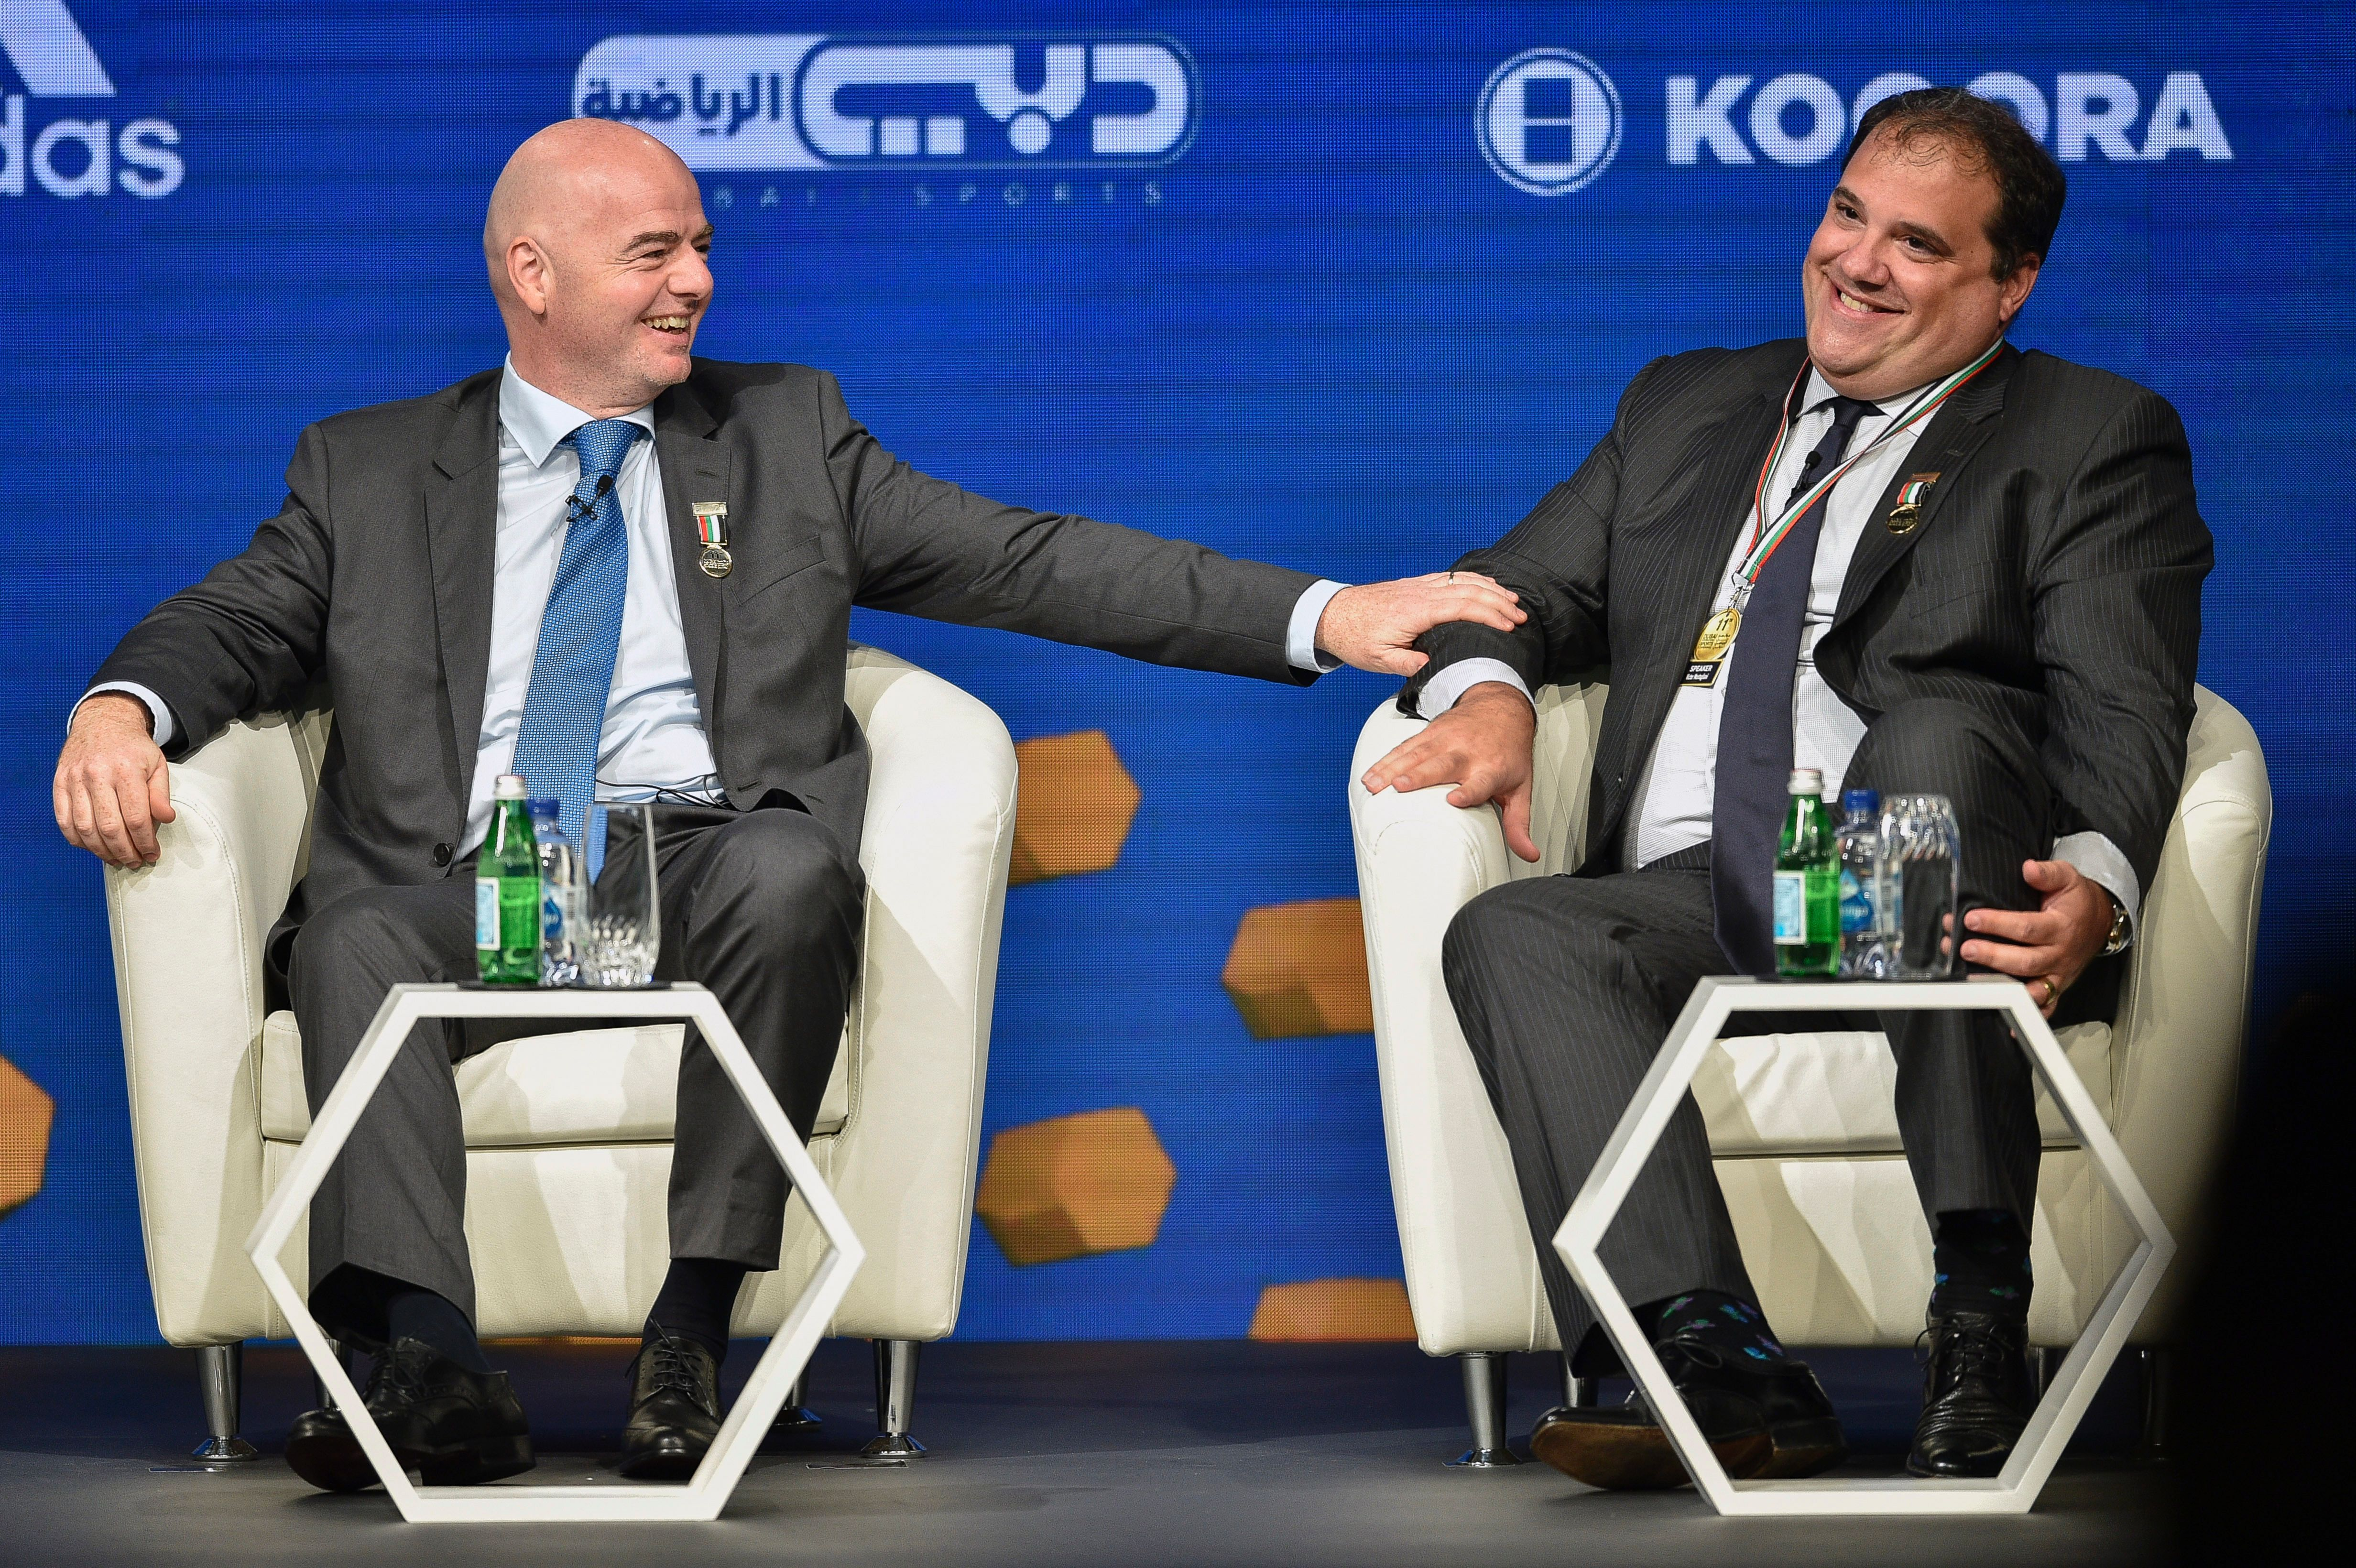 FIFA President, Gianni Infantino (L), talks with Victor Montagliani, CONCACAF President, during the Dubai international Sports conference at Madinat Jumeirah in Dubai on December 28, 2016.